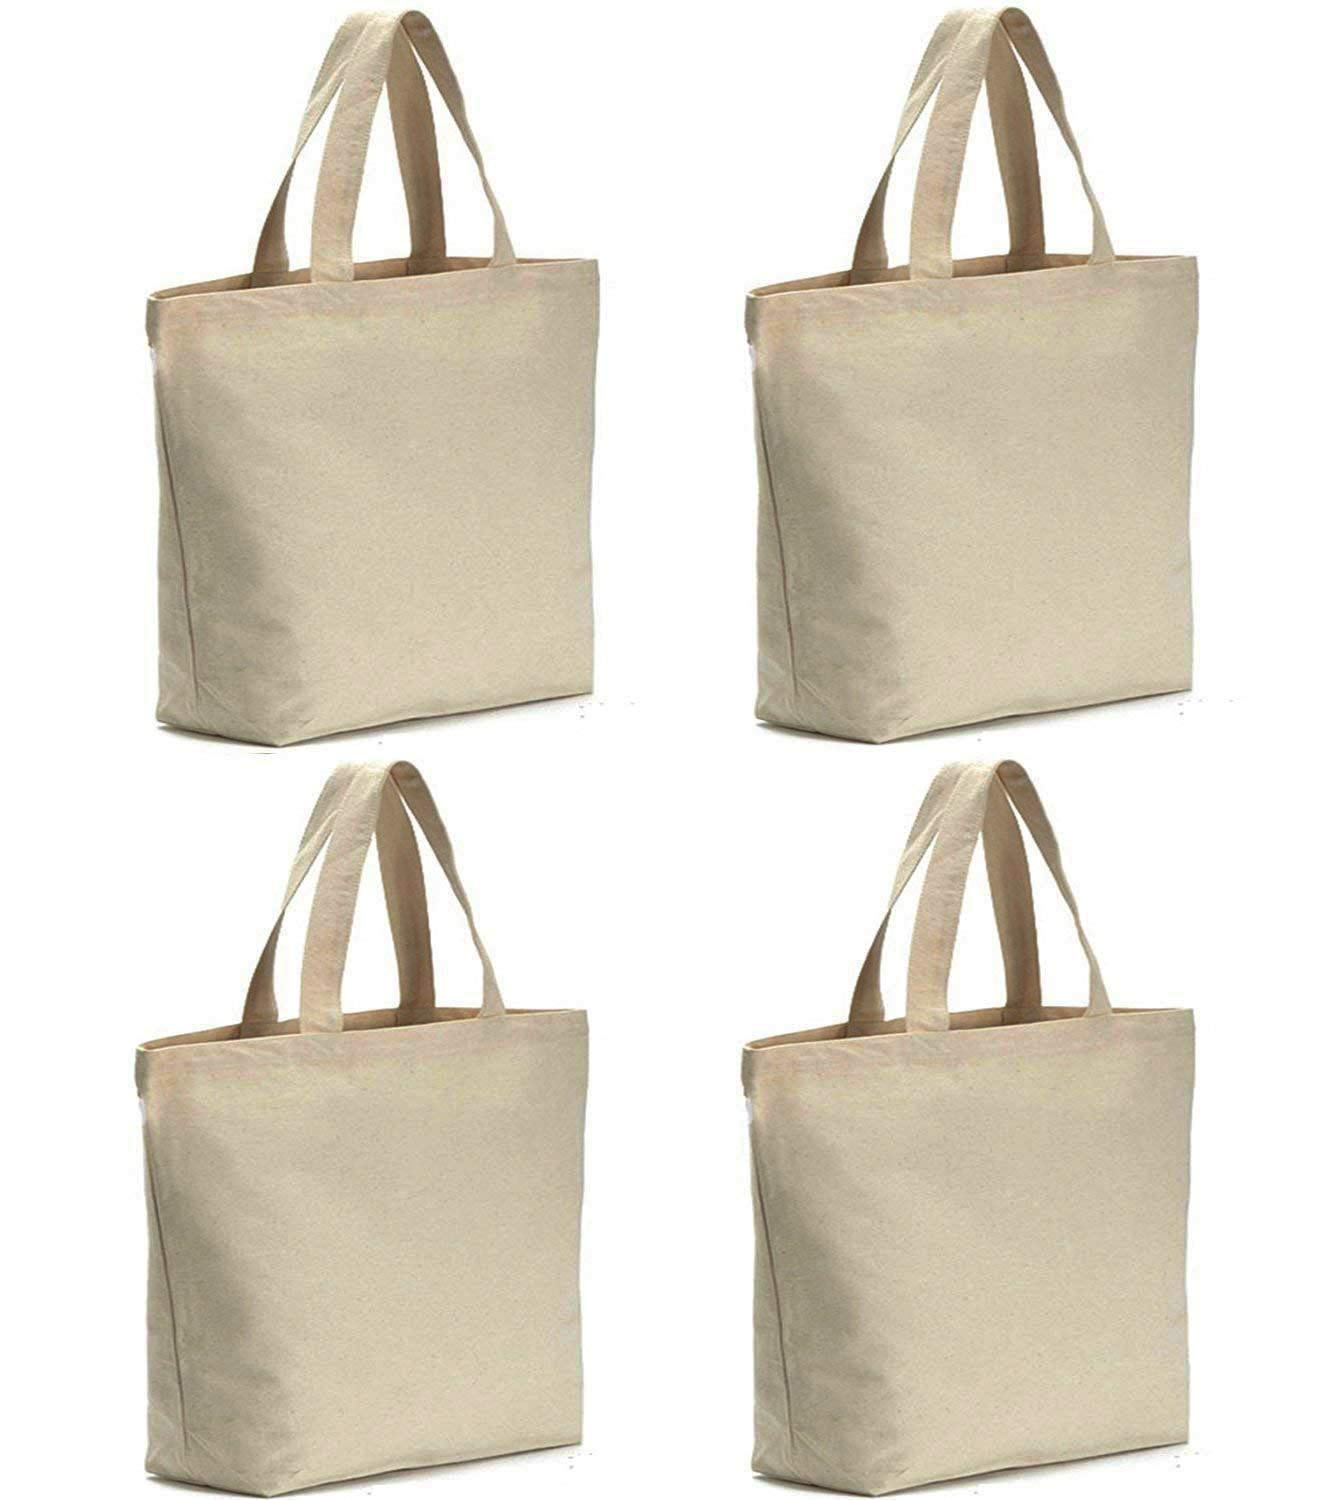 ce2fb469f Axe Sickle 4 per pack 12oz Heavy Natural Canvas tote bag 16